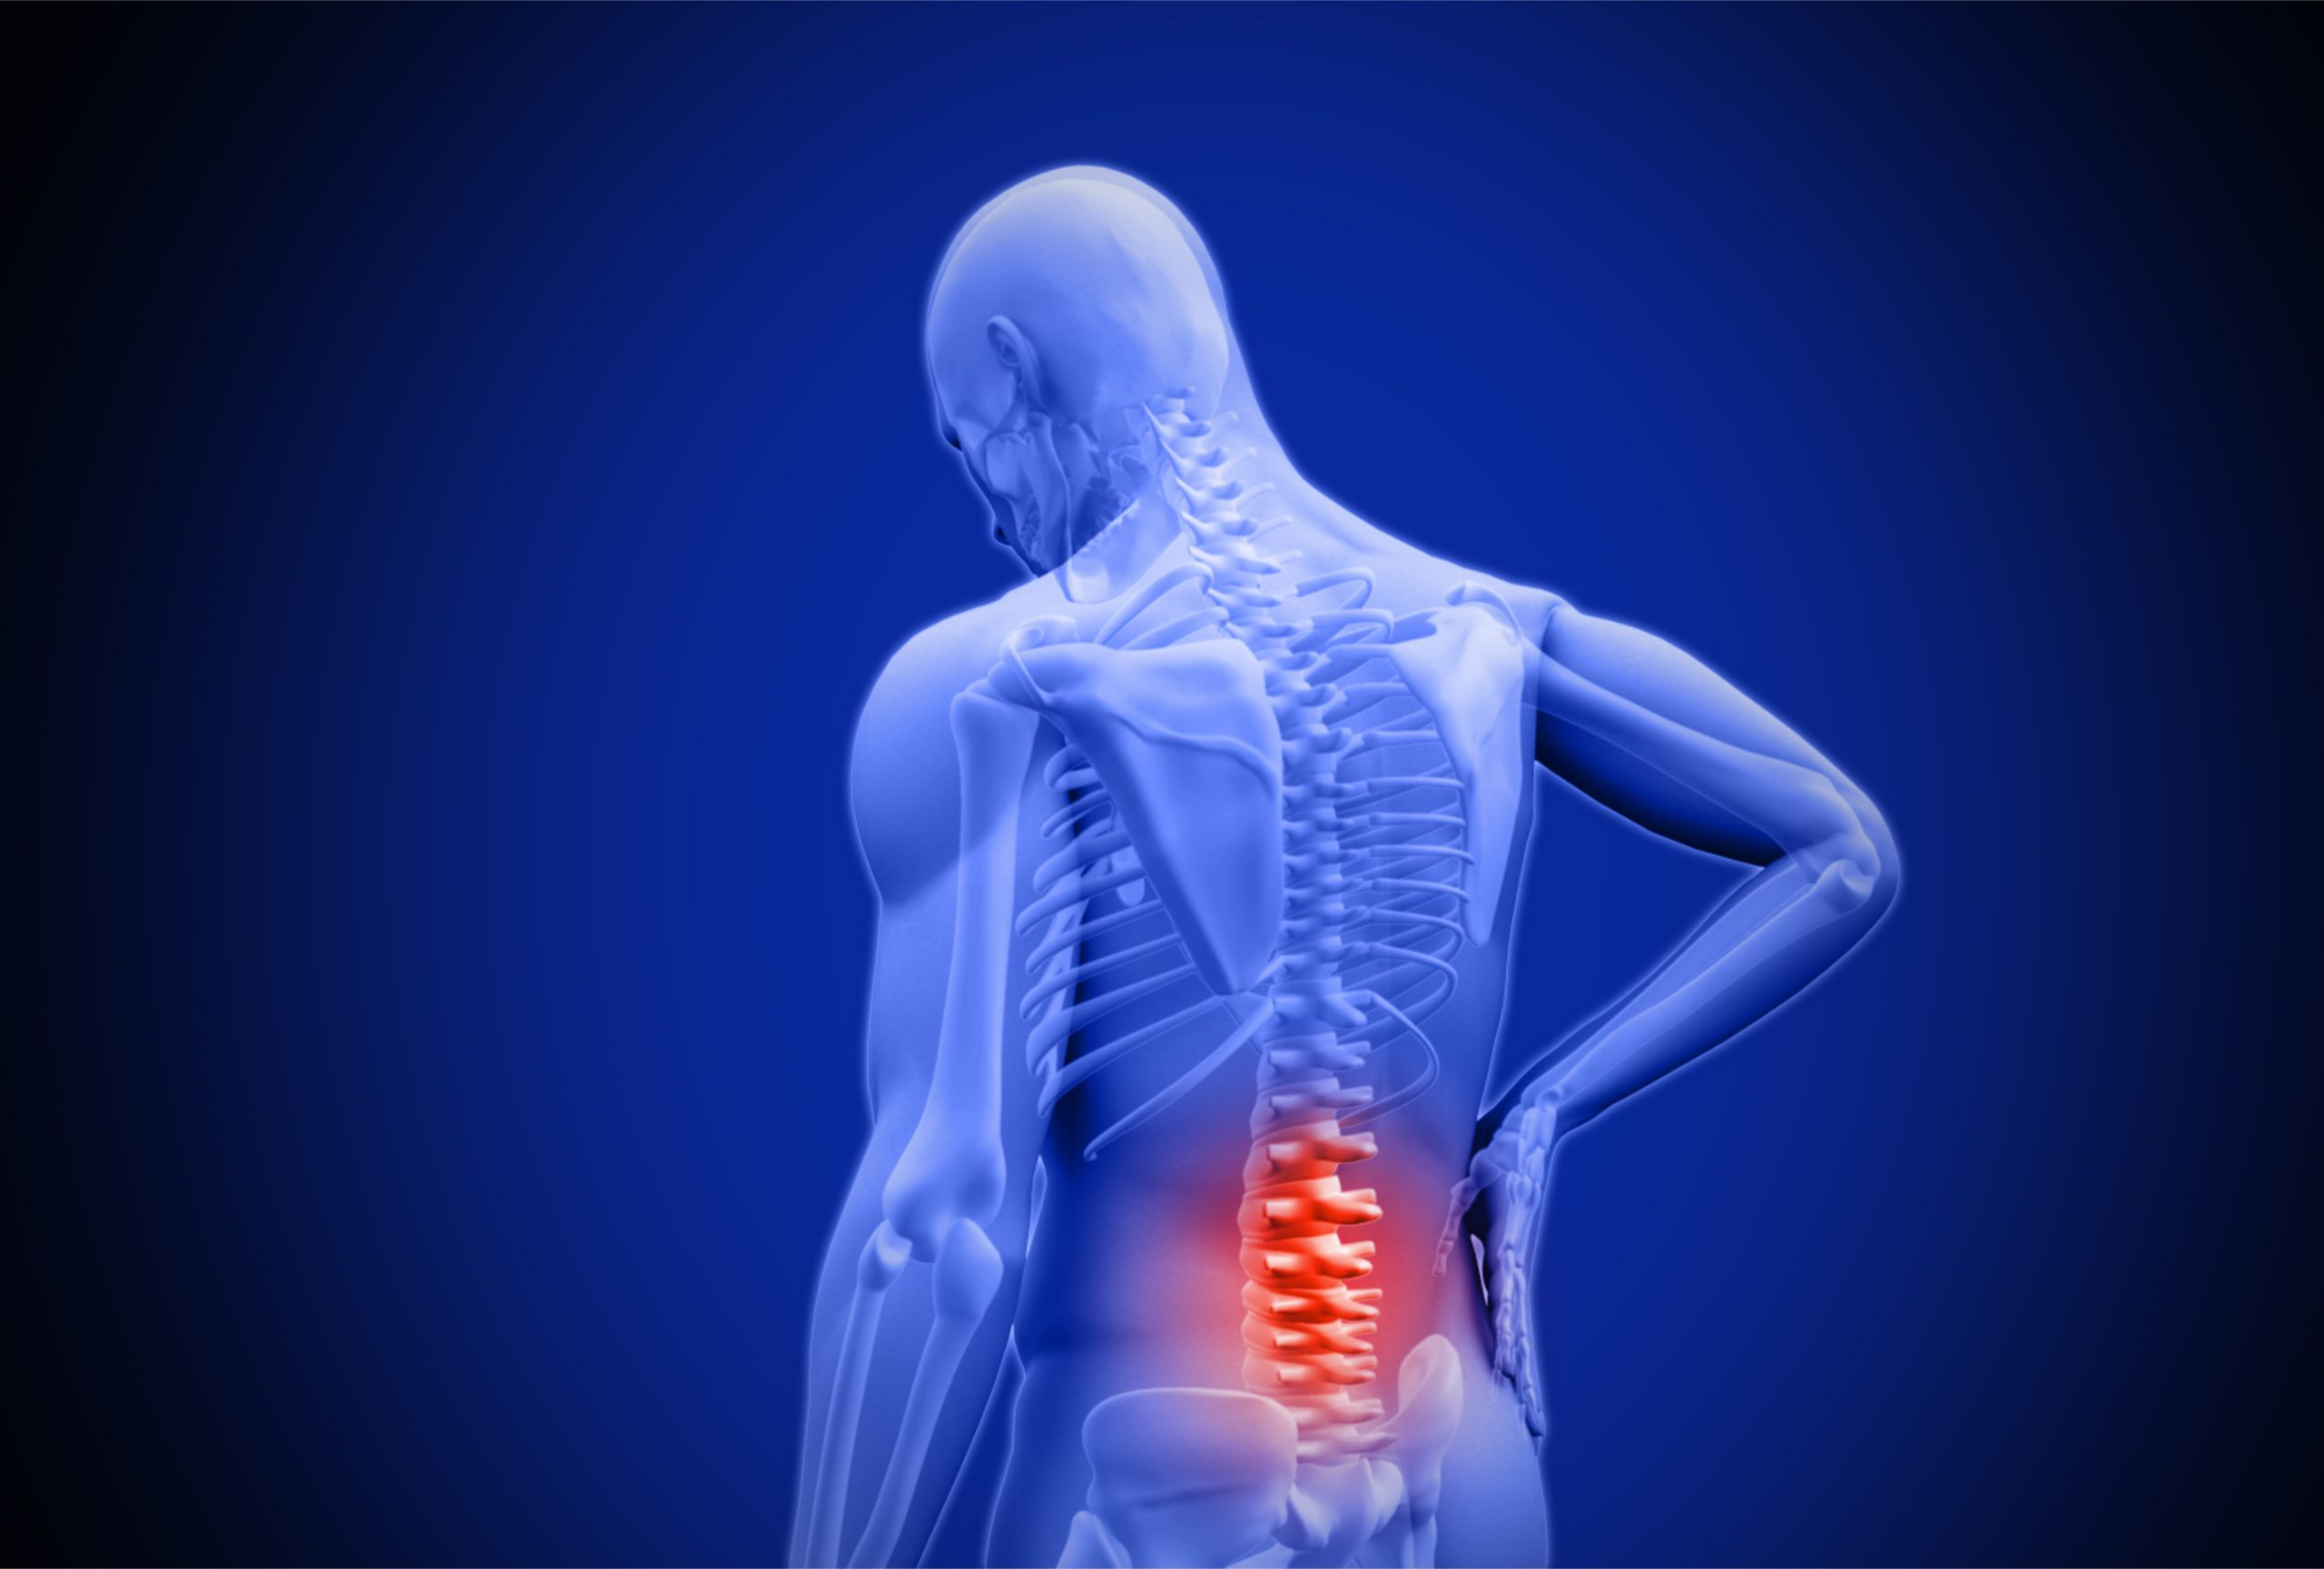 7 Things to Know About Lower Back Pain